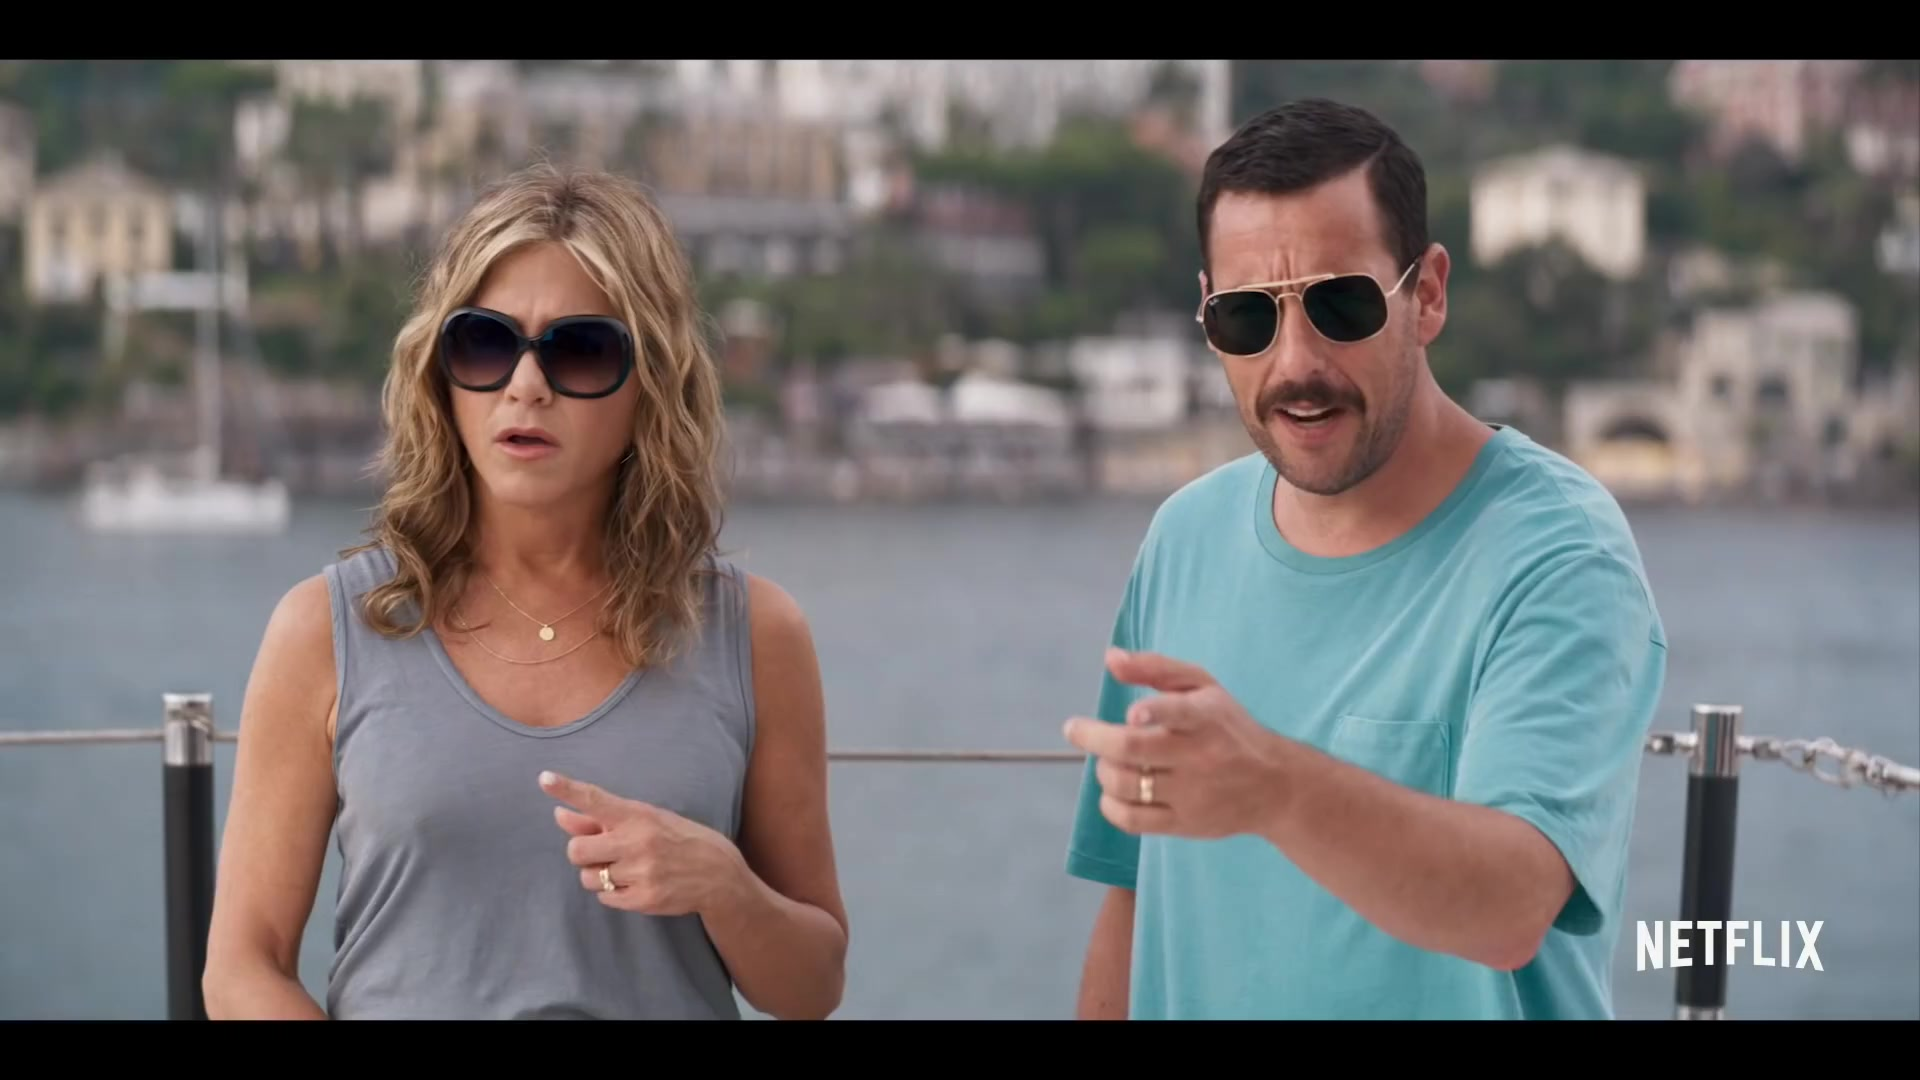 Ray-Ban Aviator Sunglasses Worn by Adam Sandler in Murder